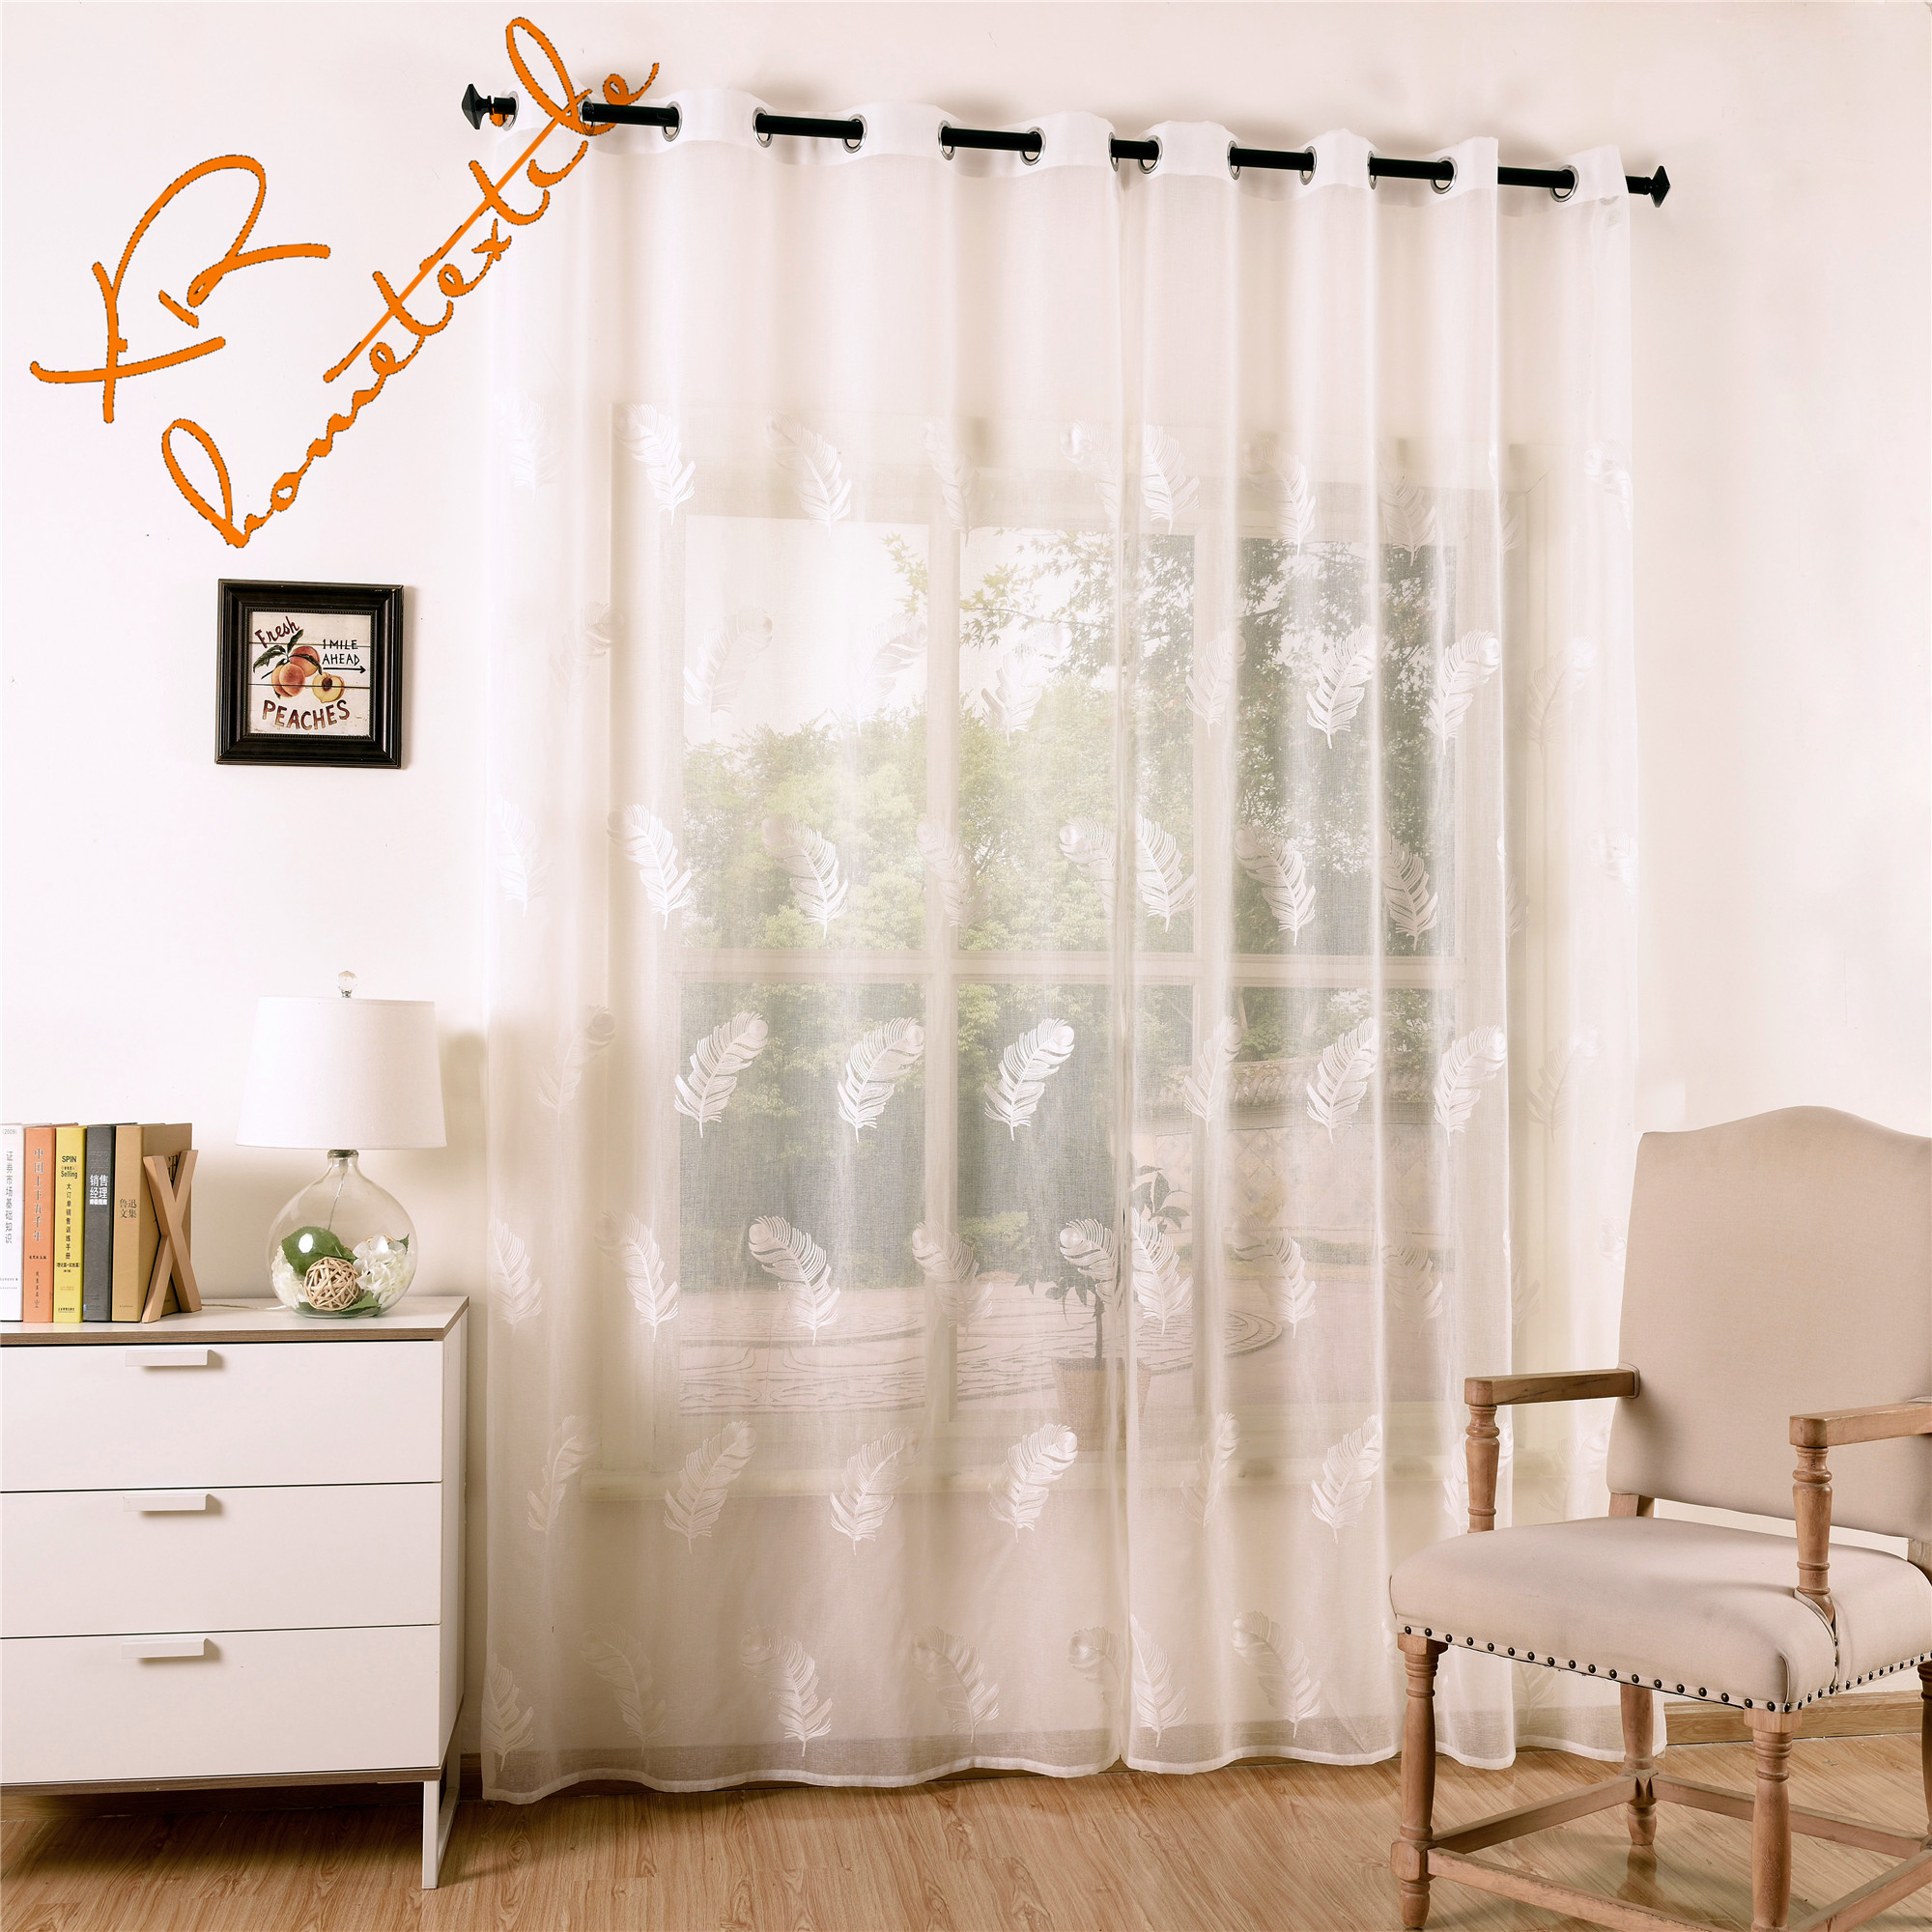 Factory Wholesale European Strongcurtain Strong Strongembroidered